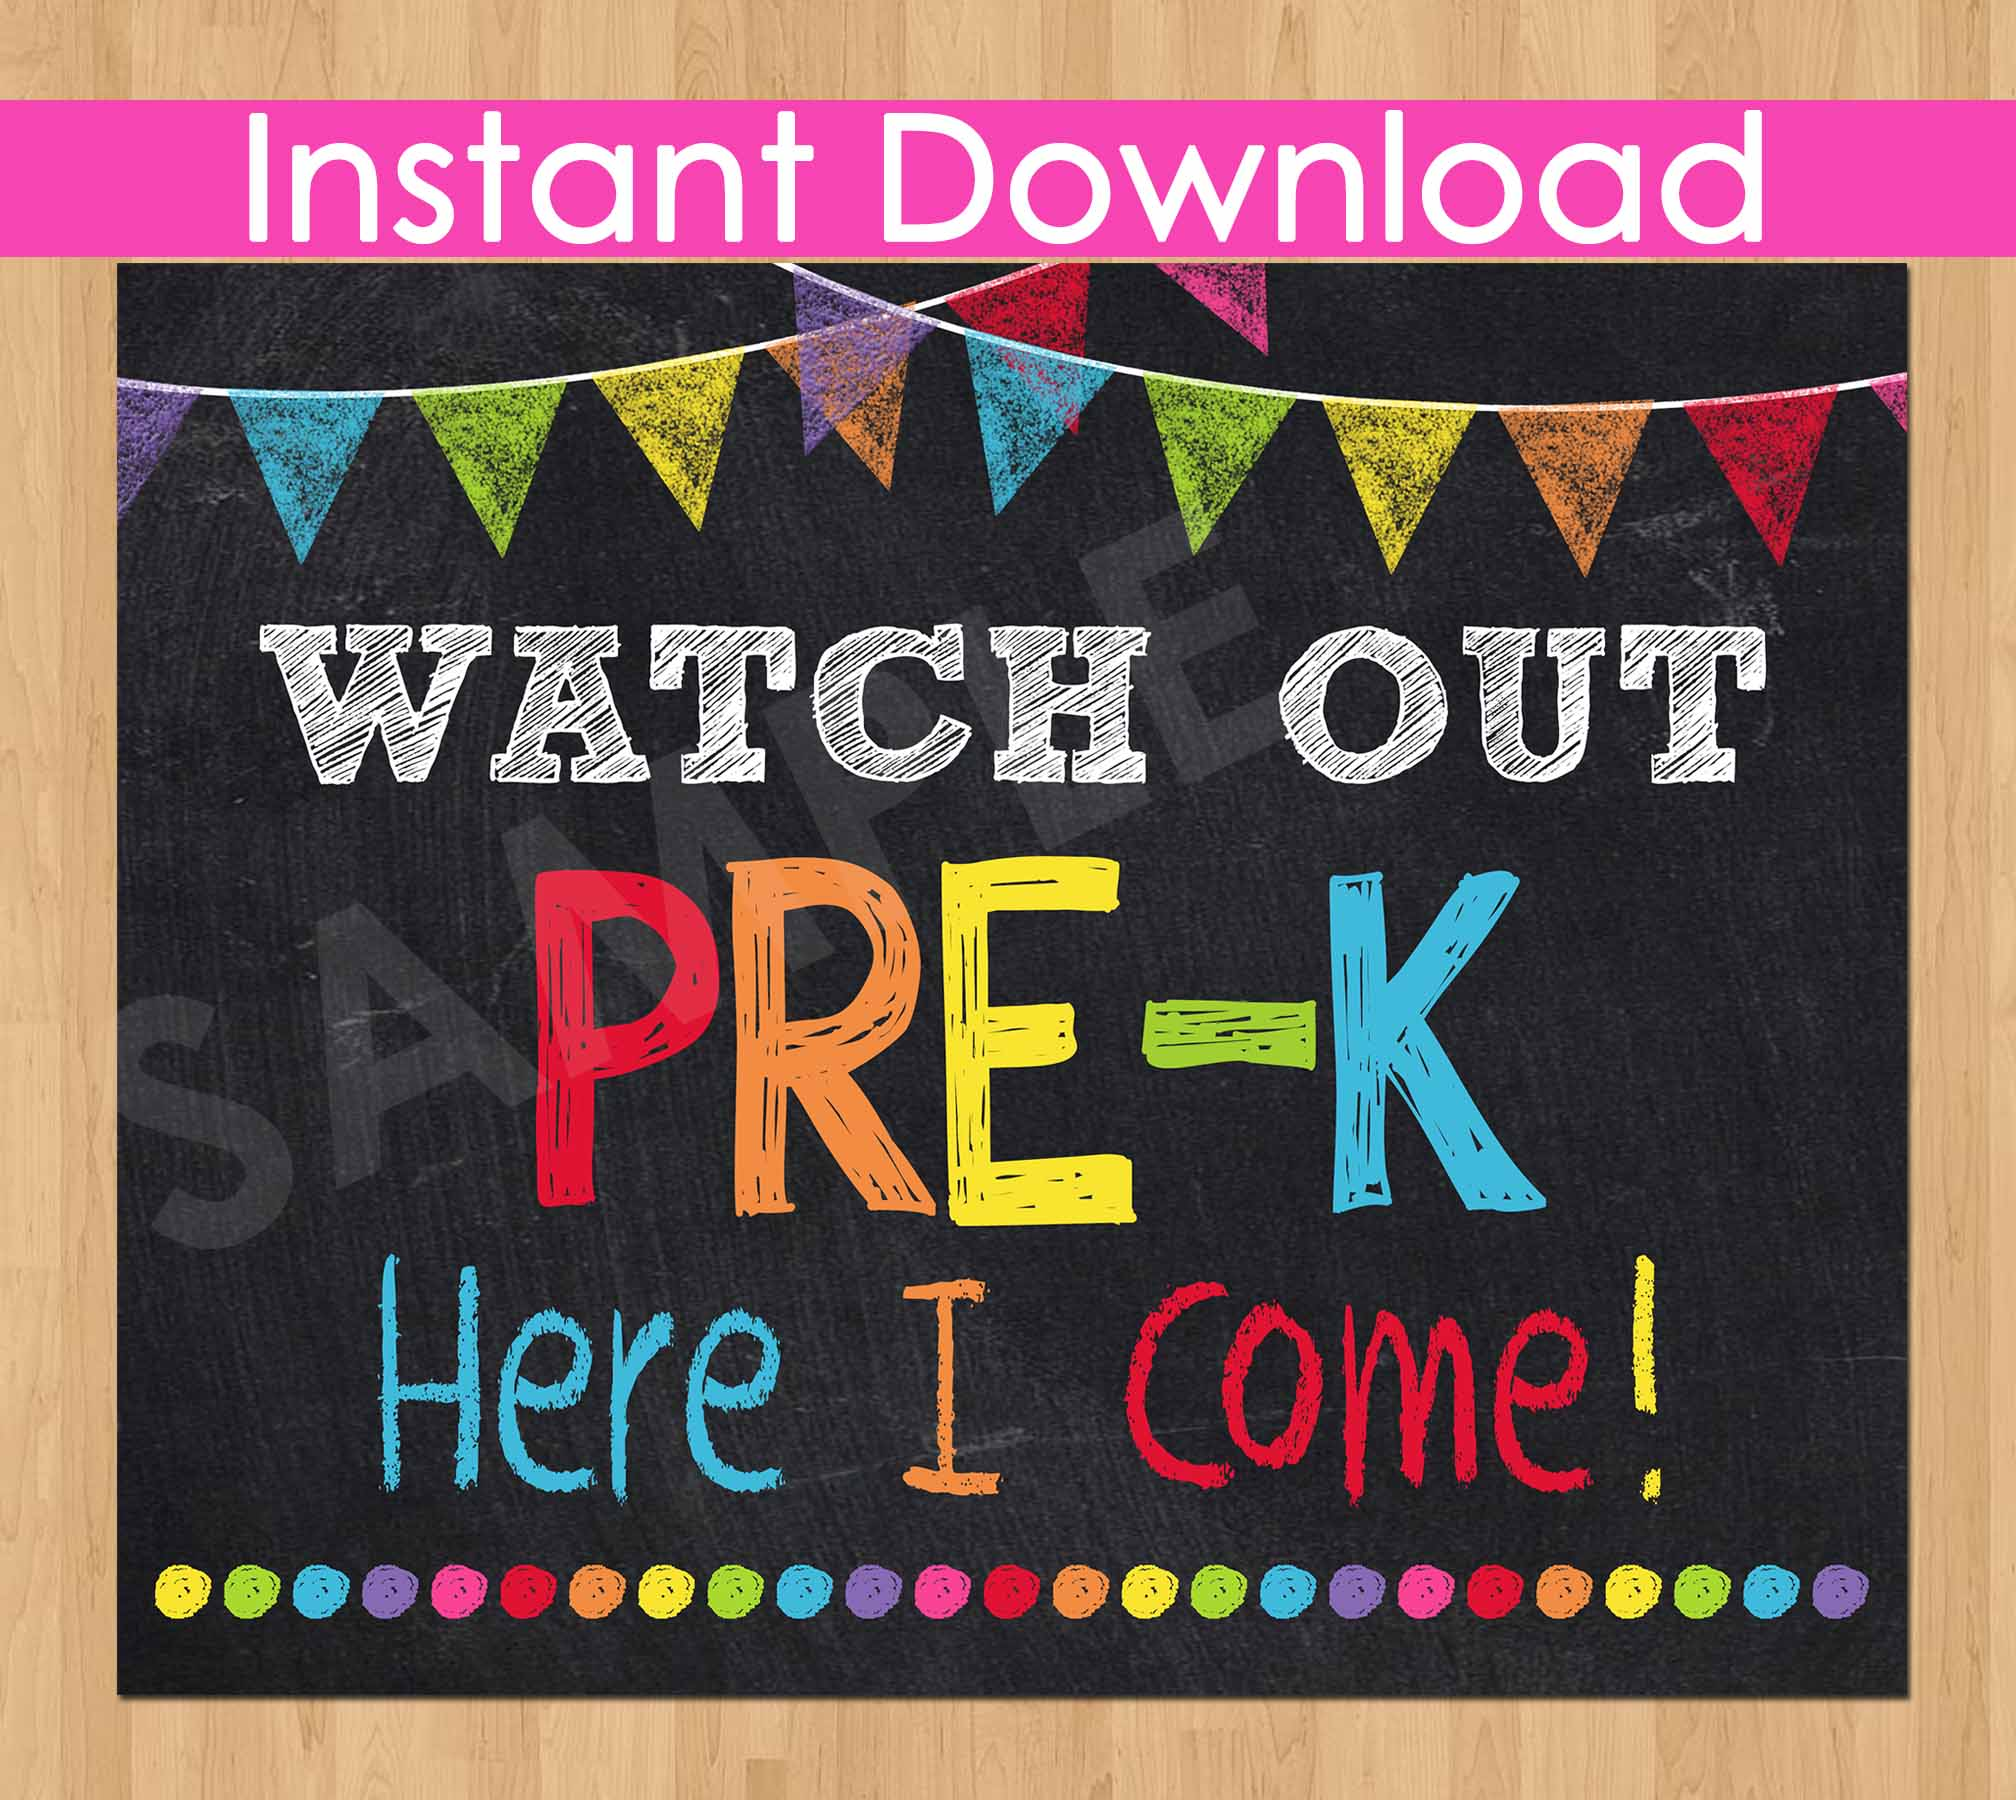 First Day of Pre-K Sign INSTANT DOWNLOAD, Watch Out Pre-K Here I Come Sign, Back to School Chalkboard Sign Printable Photo Prop Preschool